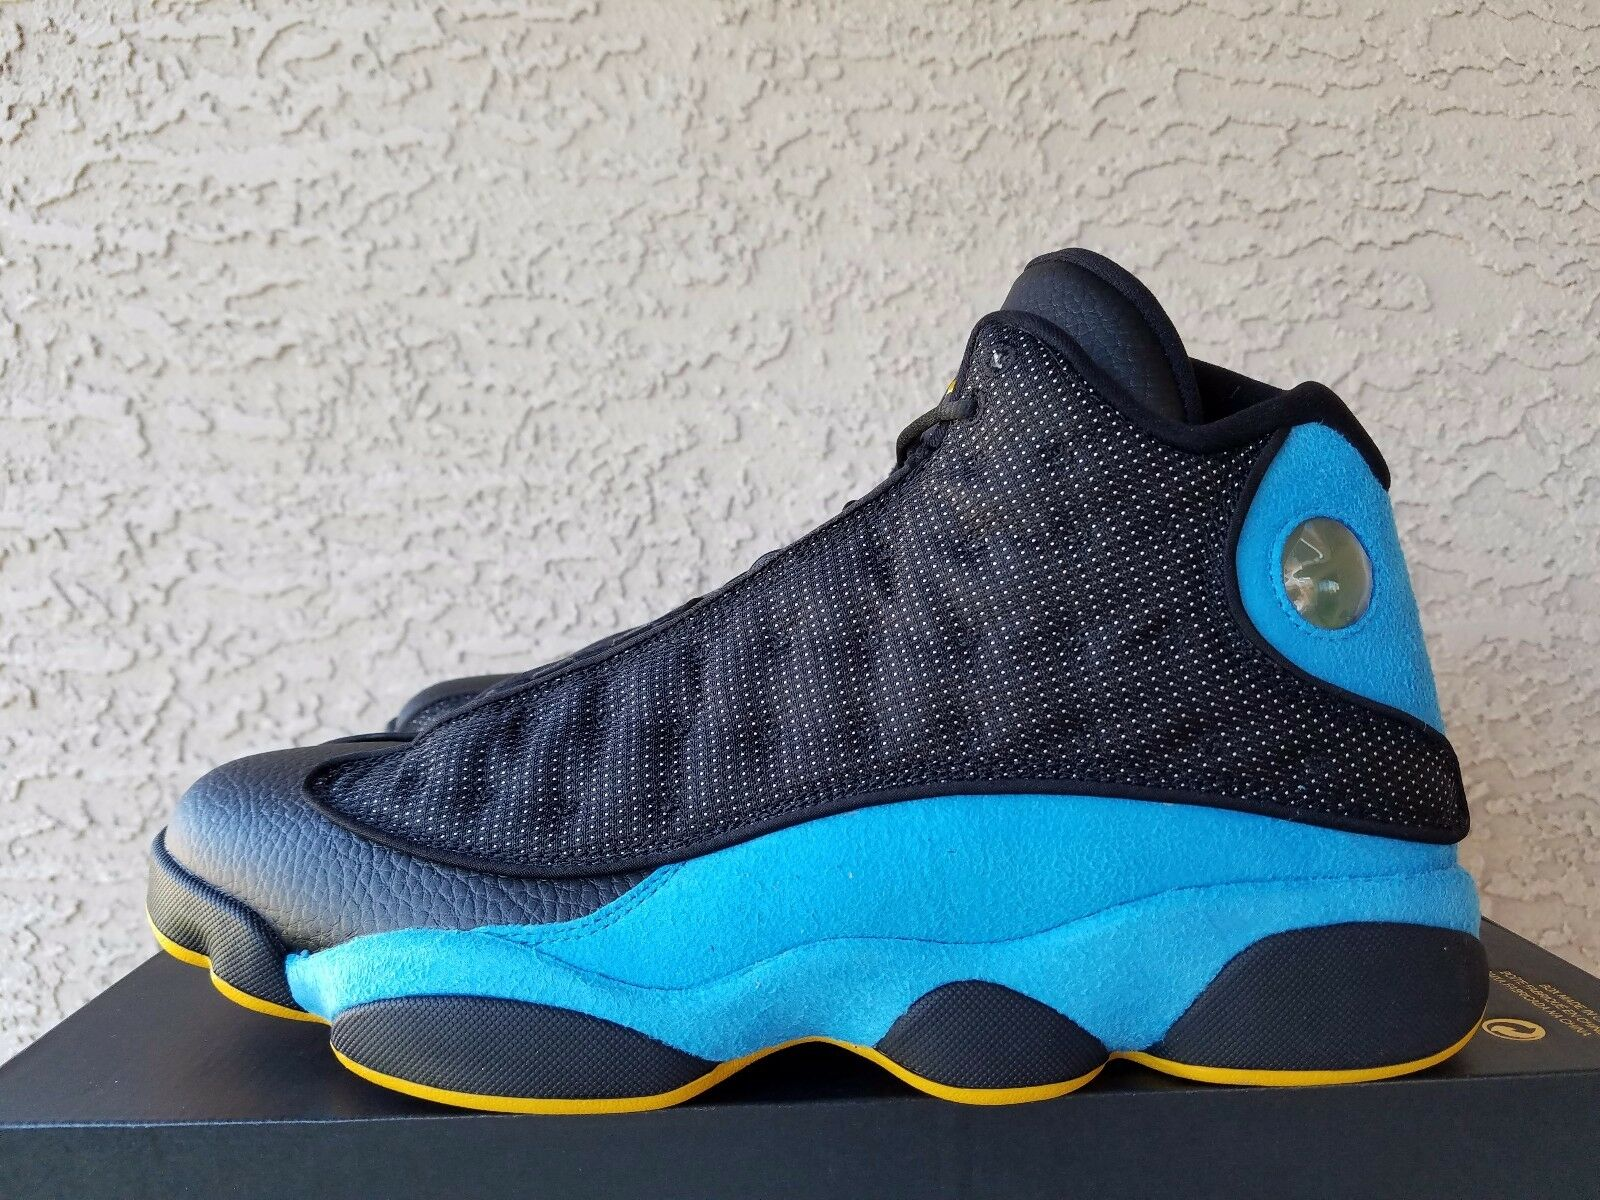 Nike Air PE Jordan 13 Retro CP PE Air Black Sunstone Orion Blue 823902-015 Size 11 3510b6